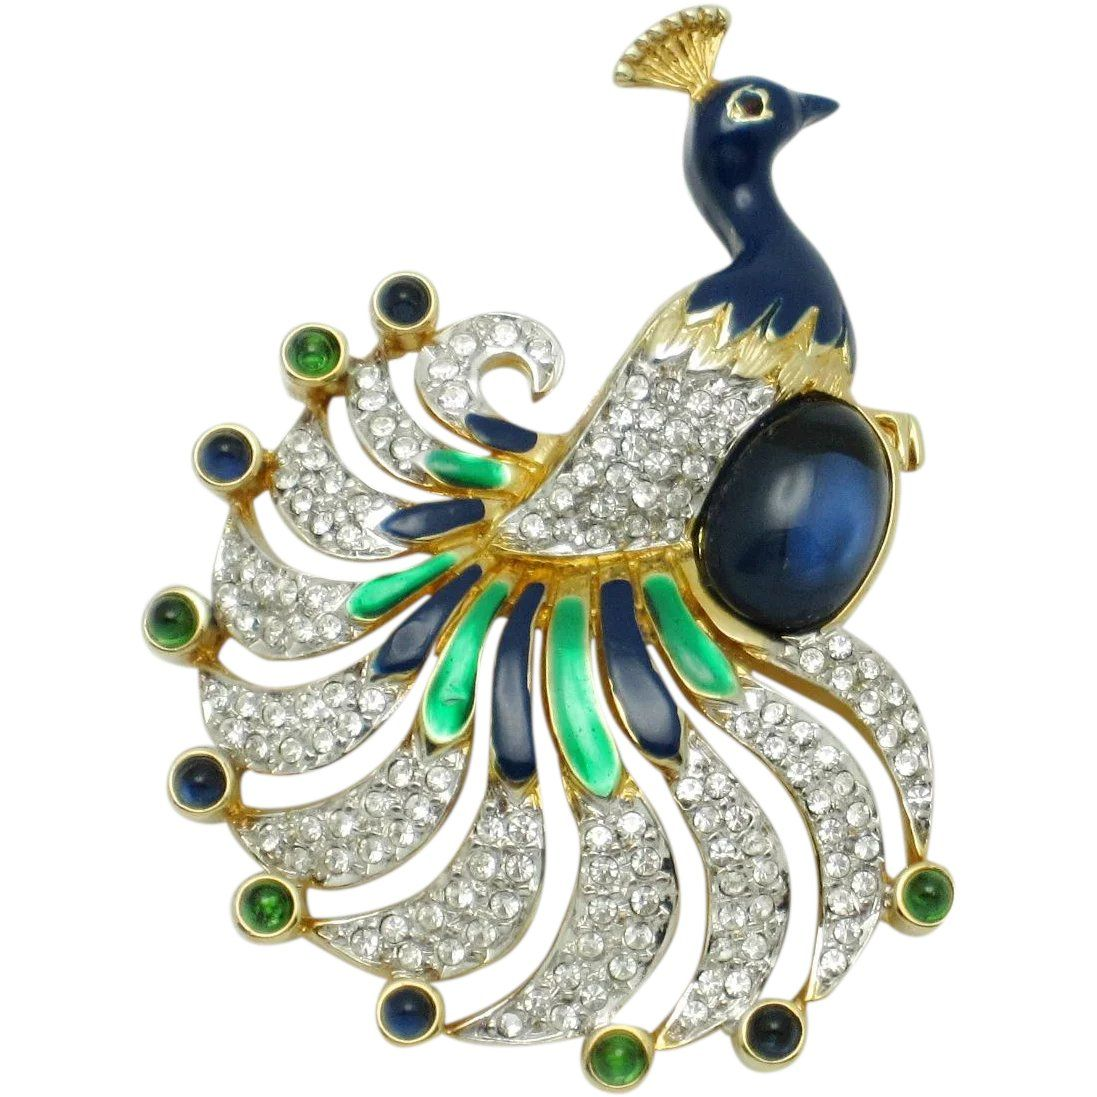 dfbc5c1f61e Gorgeous Vintage Signed KEYES Peacock Figural Brooch Pin --- found at  www.rubylane.com #vintagebeginshere #newarrivals #vintagejewelry #jewelry # vintage